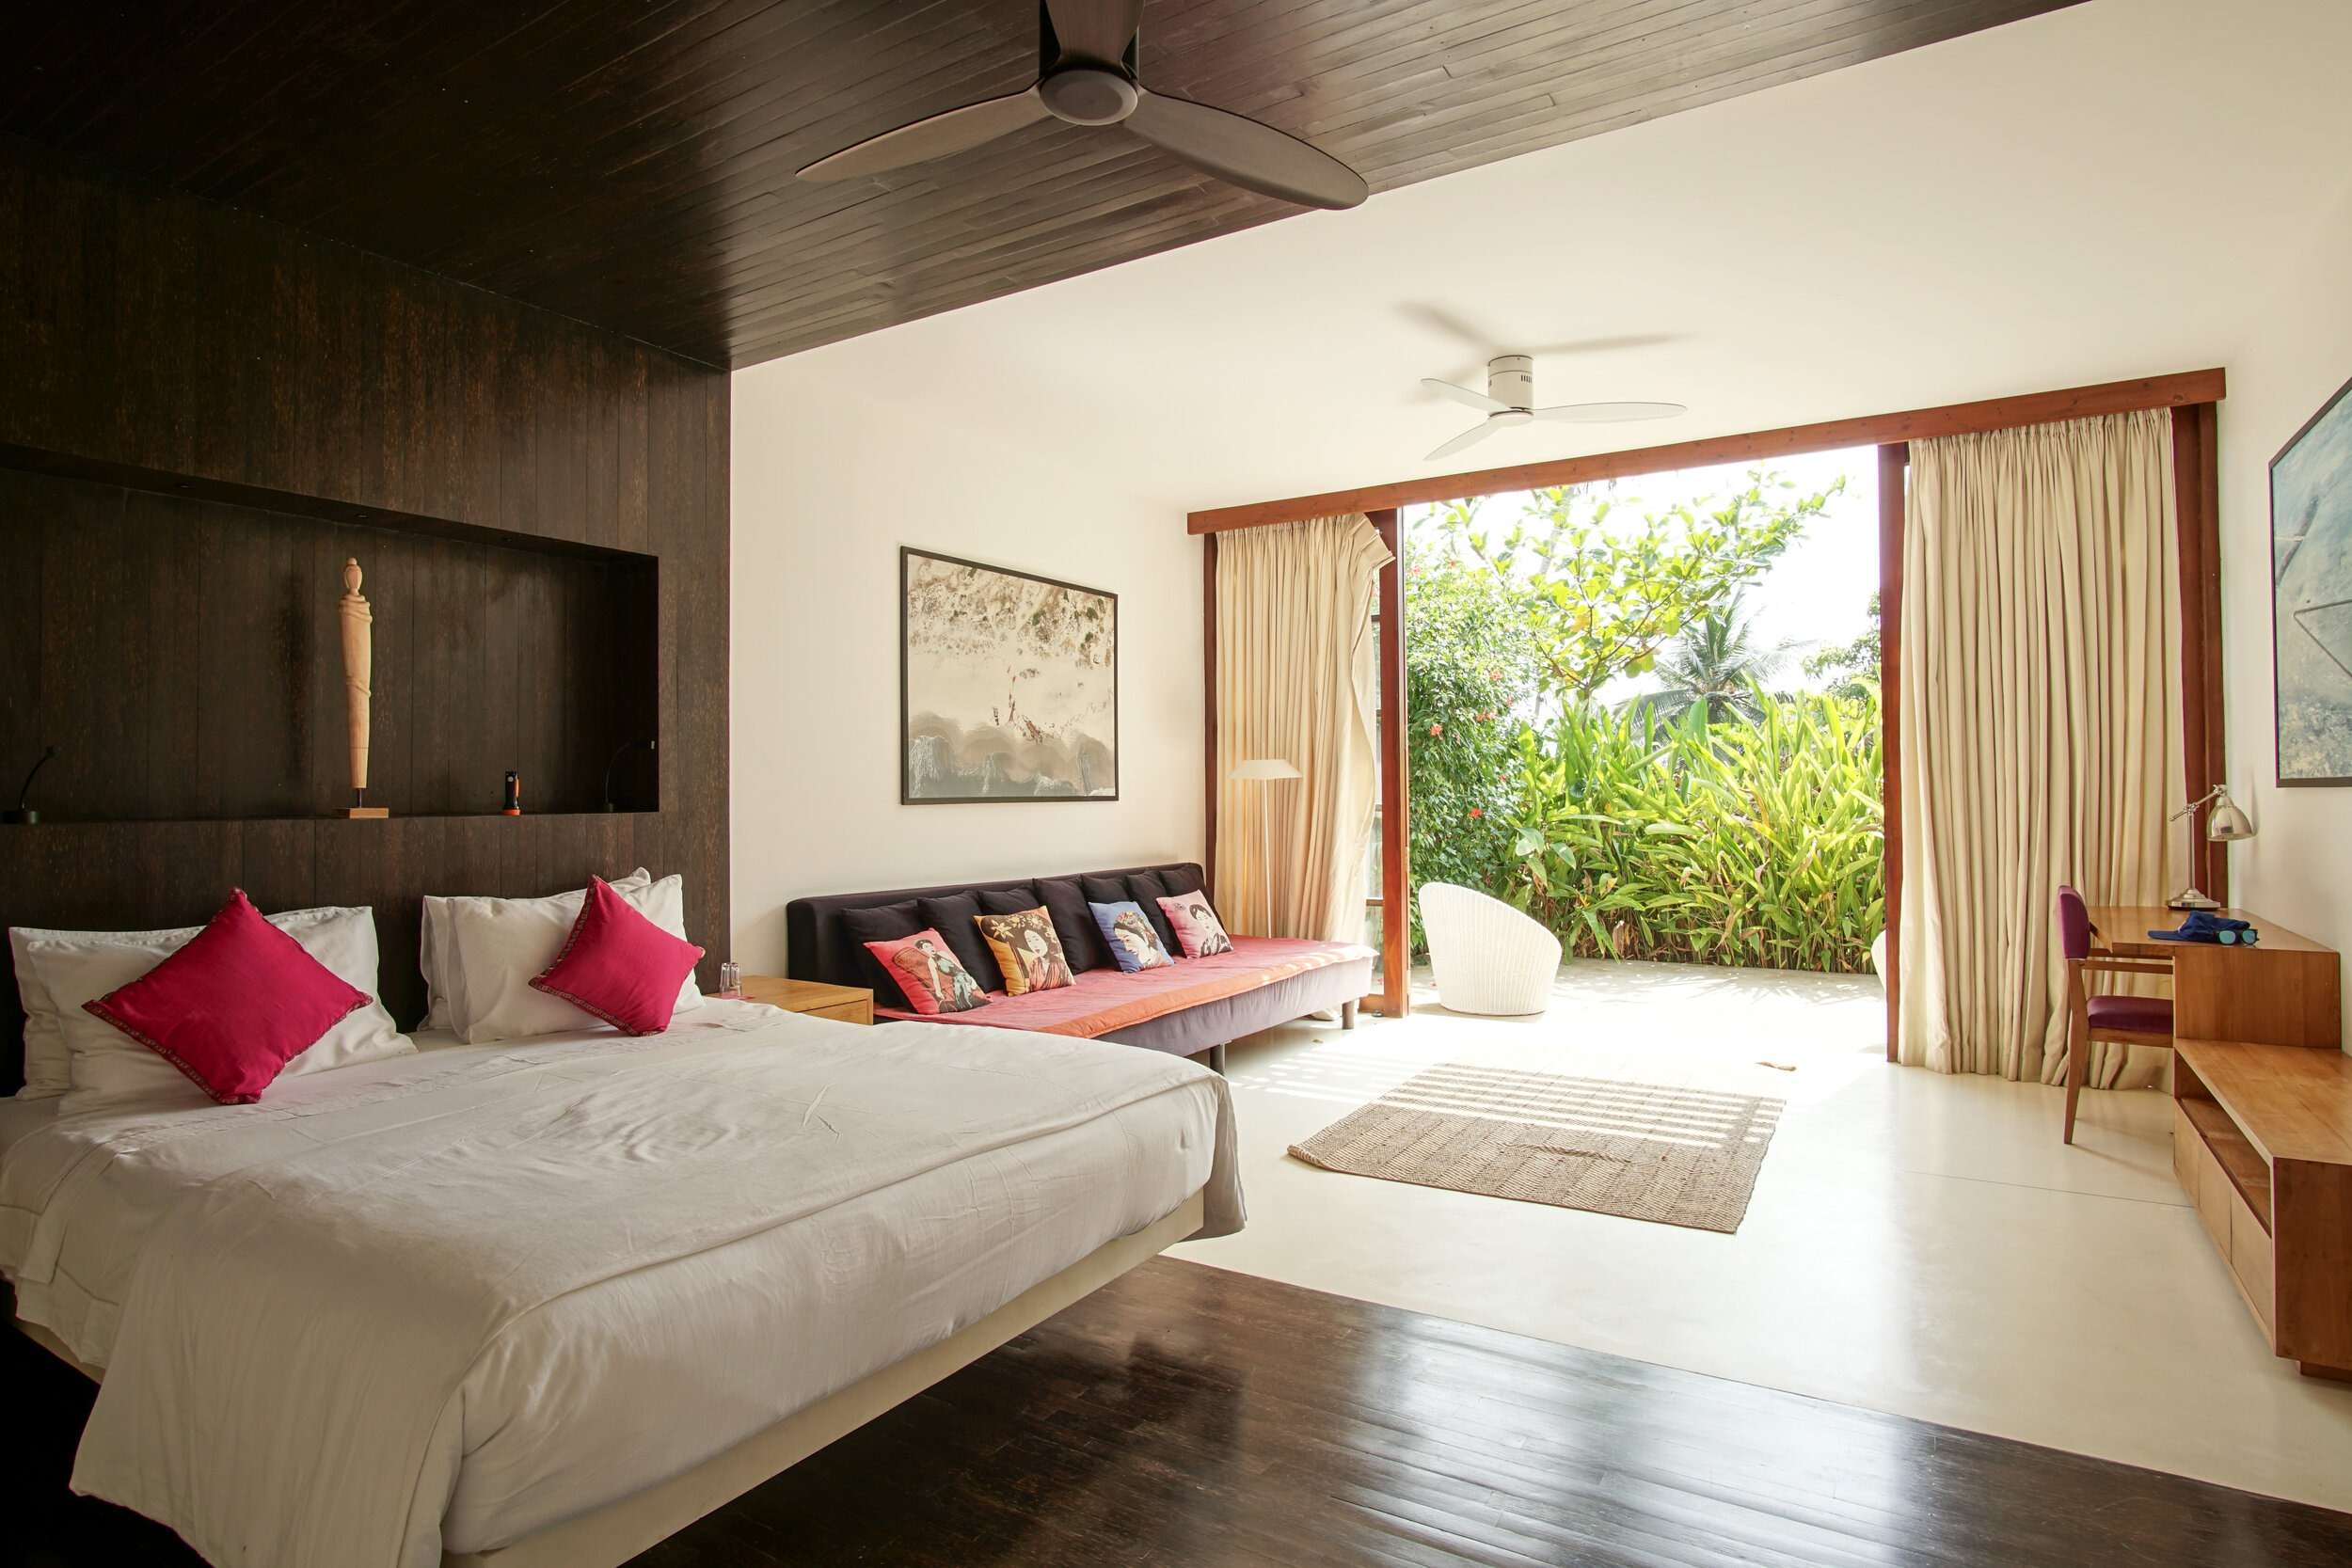 Master bedroom at Villa Wambatu, looking out to the patio with lush greenery